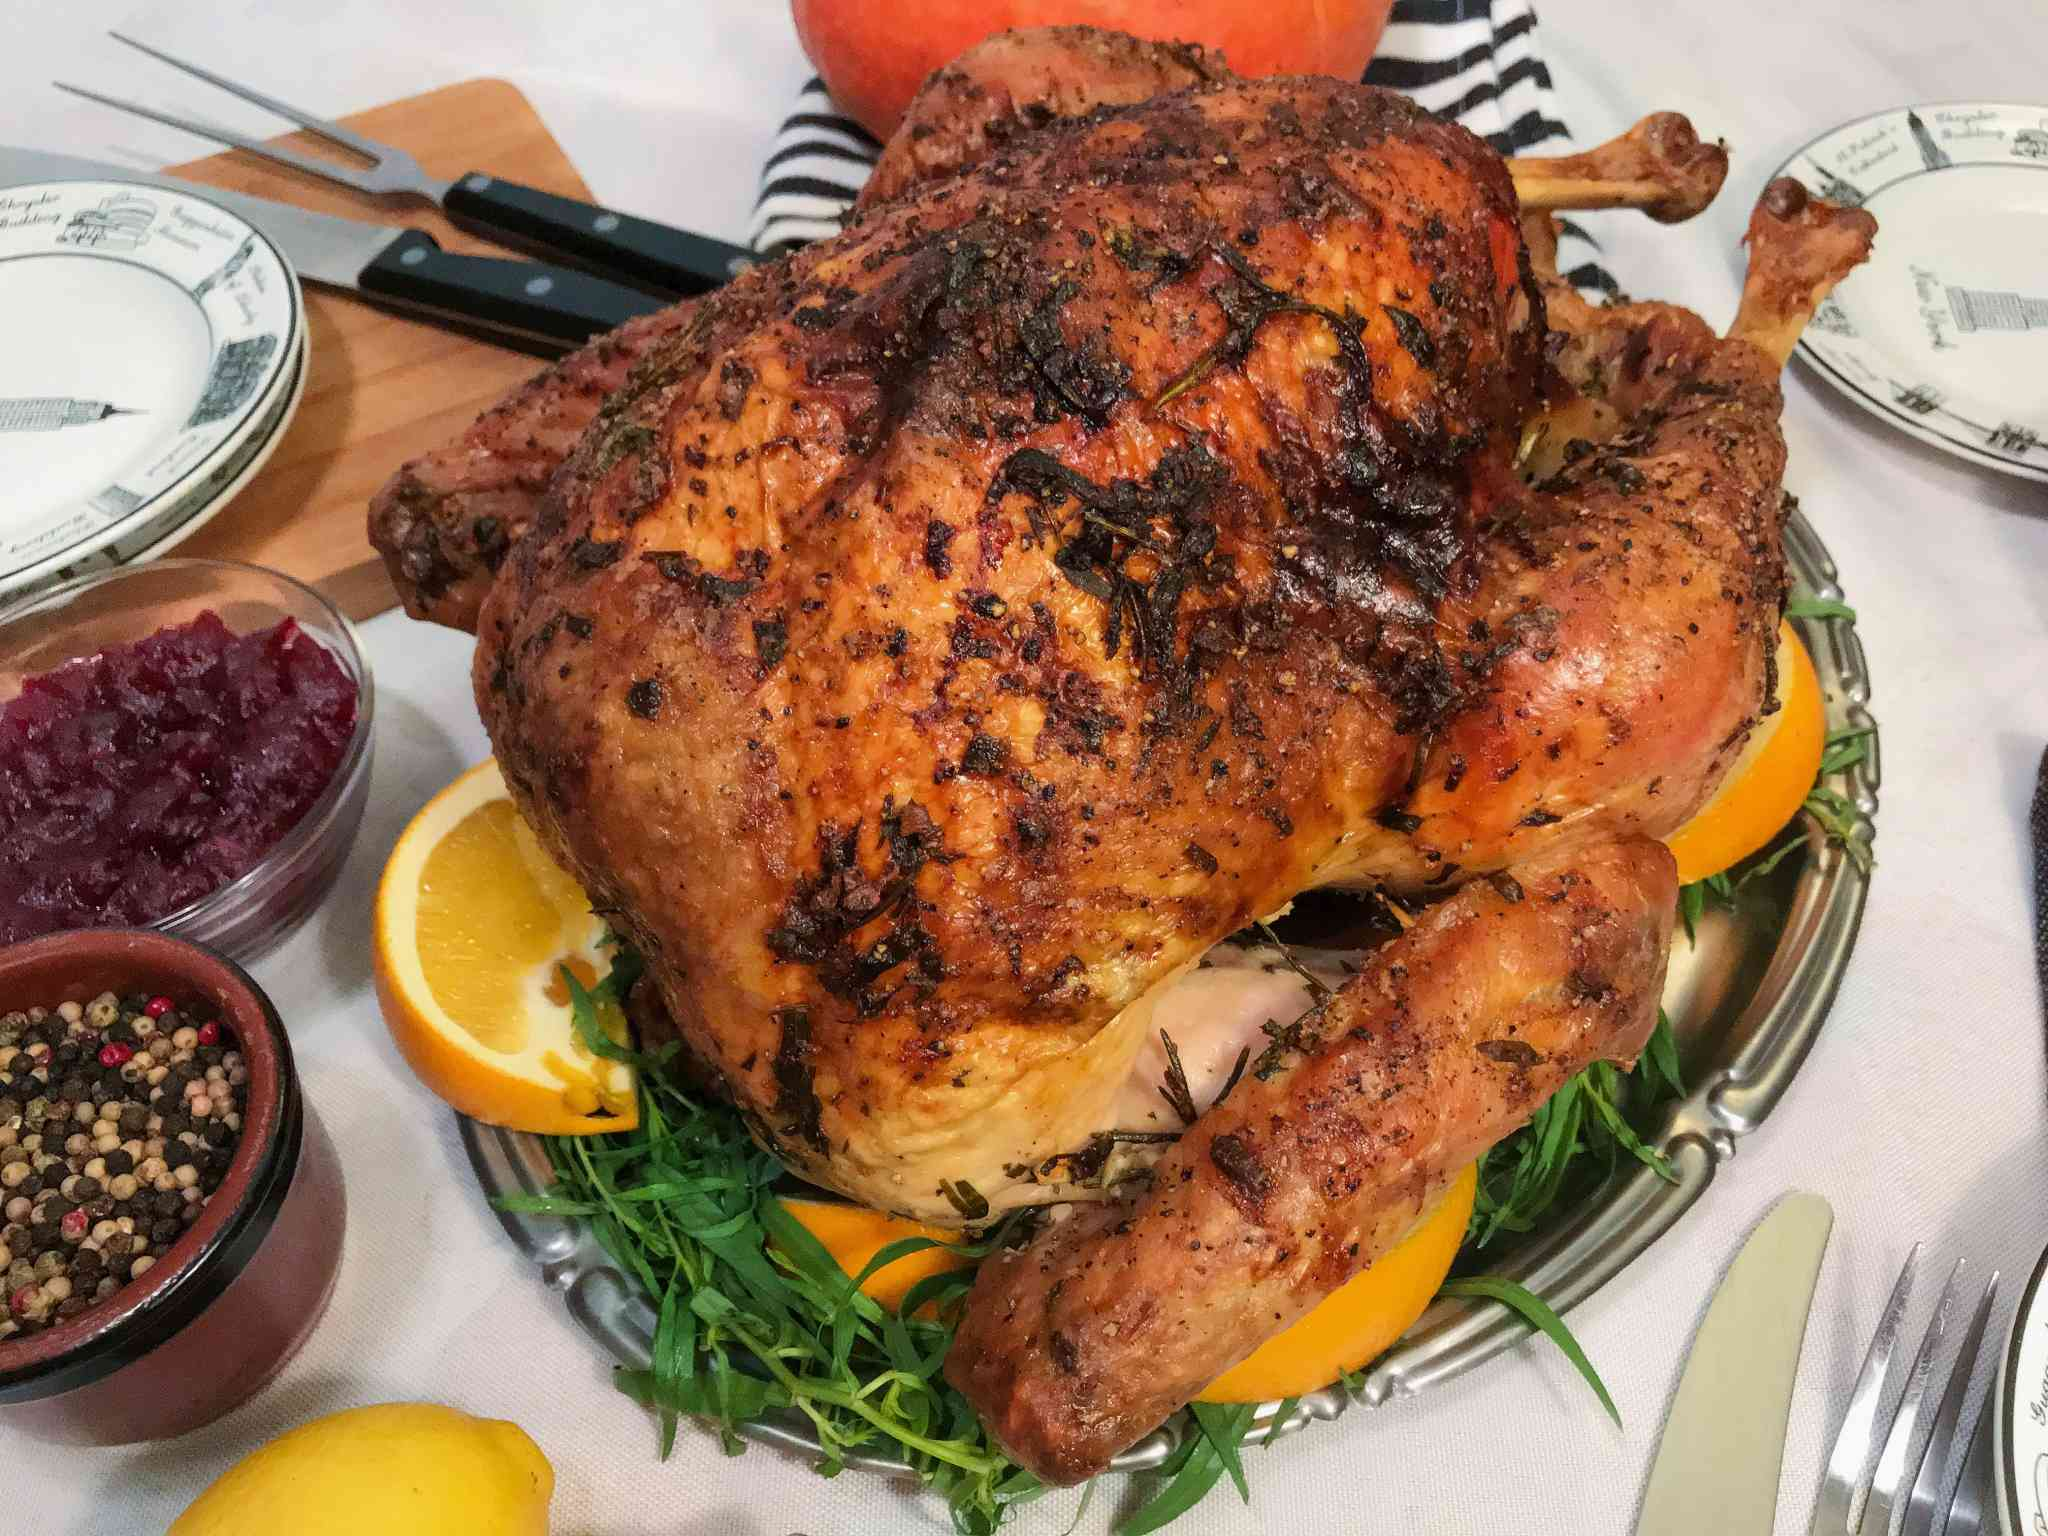 Tarragon & Rosemary Turkey